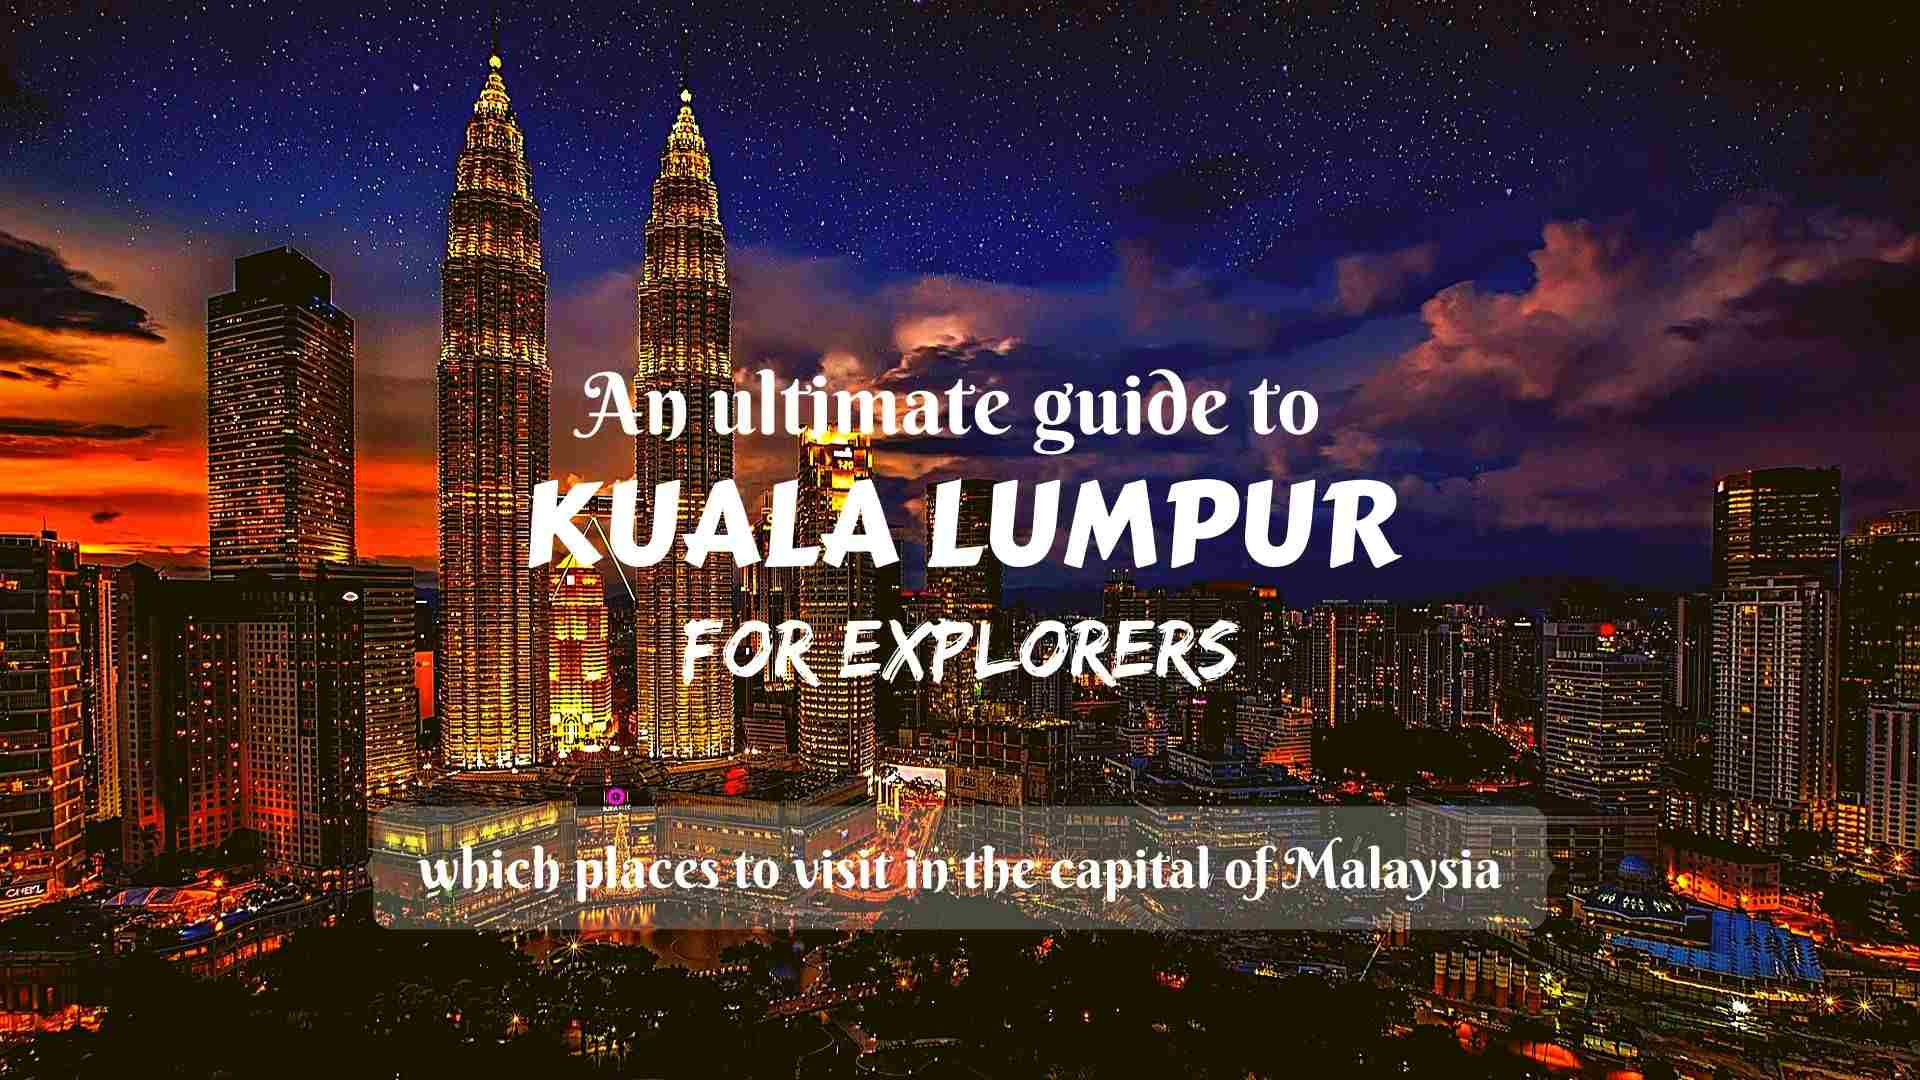 An ultimate guide to Kuala Lumpur for explorers- which places to visit in the capital of Malaysia